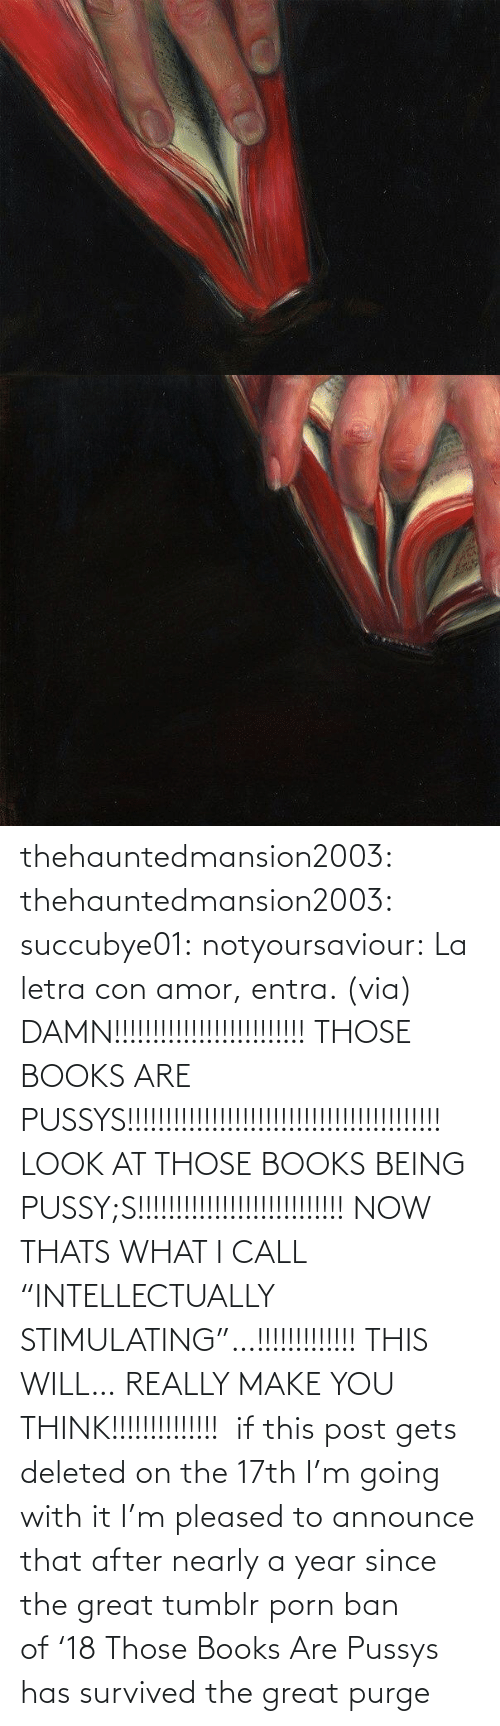 "Make You: thehauntedmansion2003: thehauntedmansion2003:  succubye01:  notyoursaviour:  La letra con amor, entra. (via)  DAMN!!!!!!!!!!!!!!!!!!!!!!!!! THOSE BOOKS ARE PUSSYS!!!!!!!!!!!!!!!!!!!!!!!!!!!!!!!!!!!!!!!!! LOOK AT THOSE BOOKS BEING PUSSY;S!!!!!!!!!!!!!!!!!!!!!!!!!!! NOW THATS WHAT I CALL ""INTELLECTUALLY STIMULATING""…!!!!!!!!!!!!! THIS WILL… REALLY MAKE YOU THINK!!!!!!!!!!!!!!   if this post gets deleted on the 17th I'm going with it  I'm pleased to announce that after nearly a year since the great tumblr porn ban of '18 Those Books Are Pussys has survived the great purge"